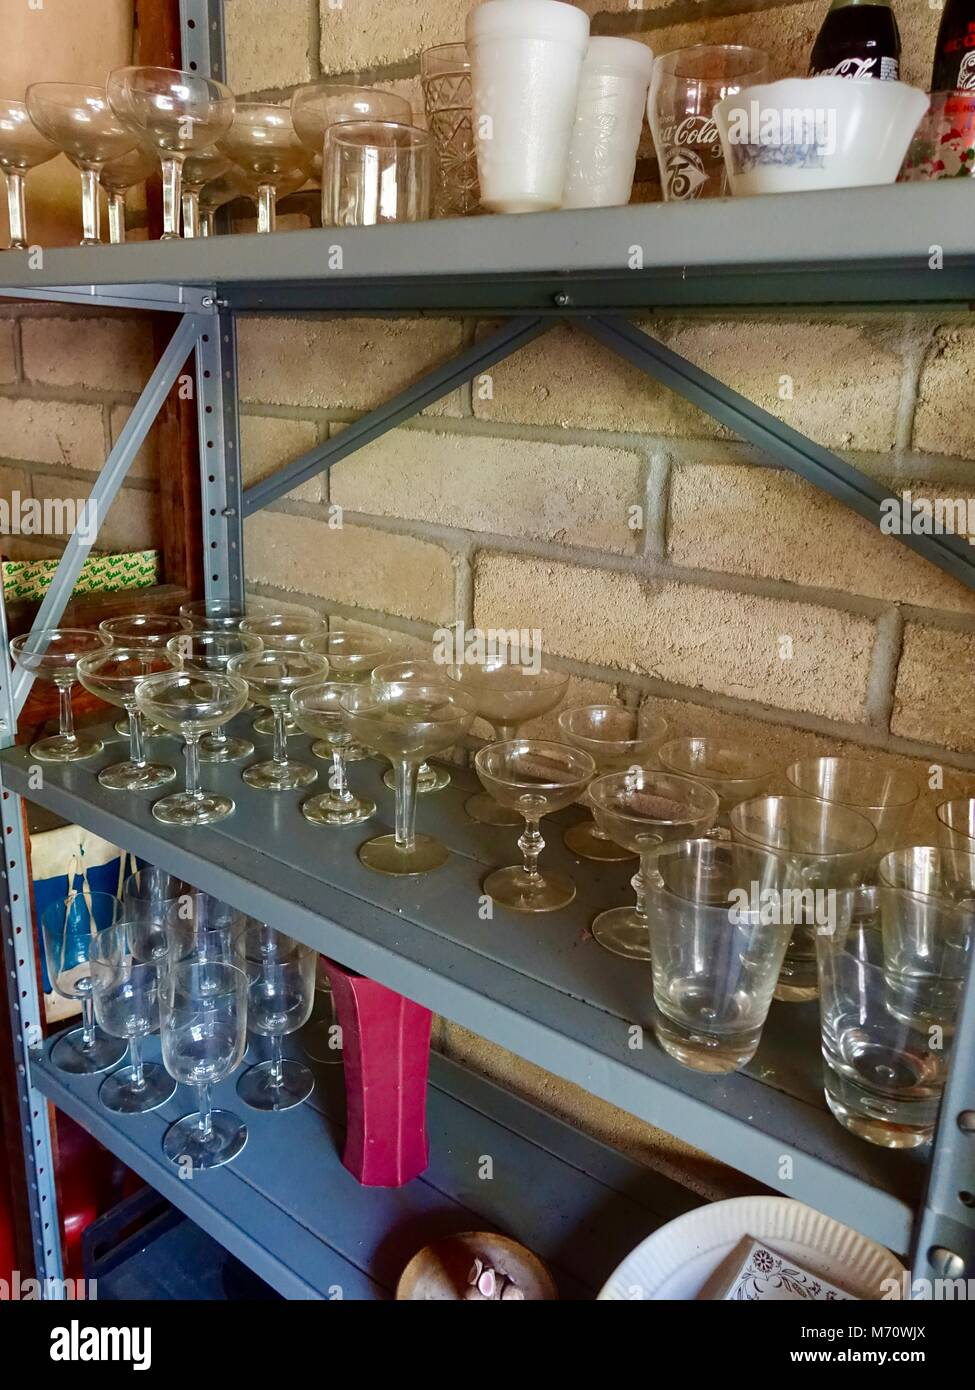 Glassware stored on shelves in garage, ready for garage sale. - Stock Image